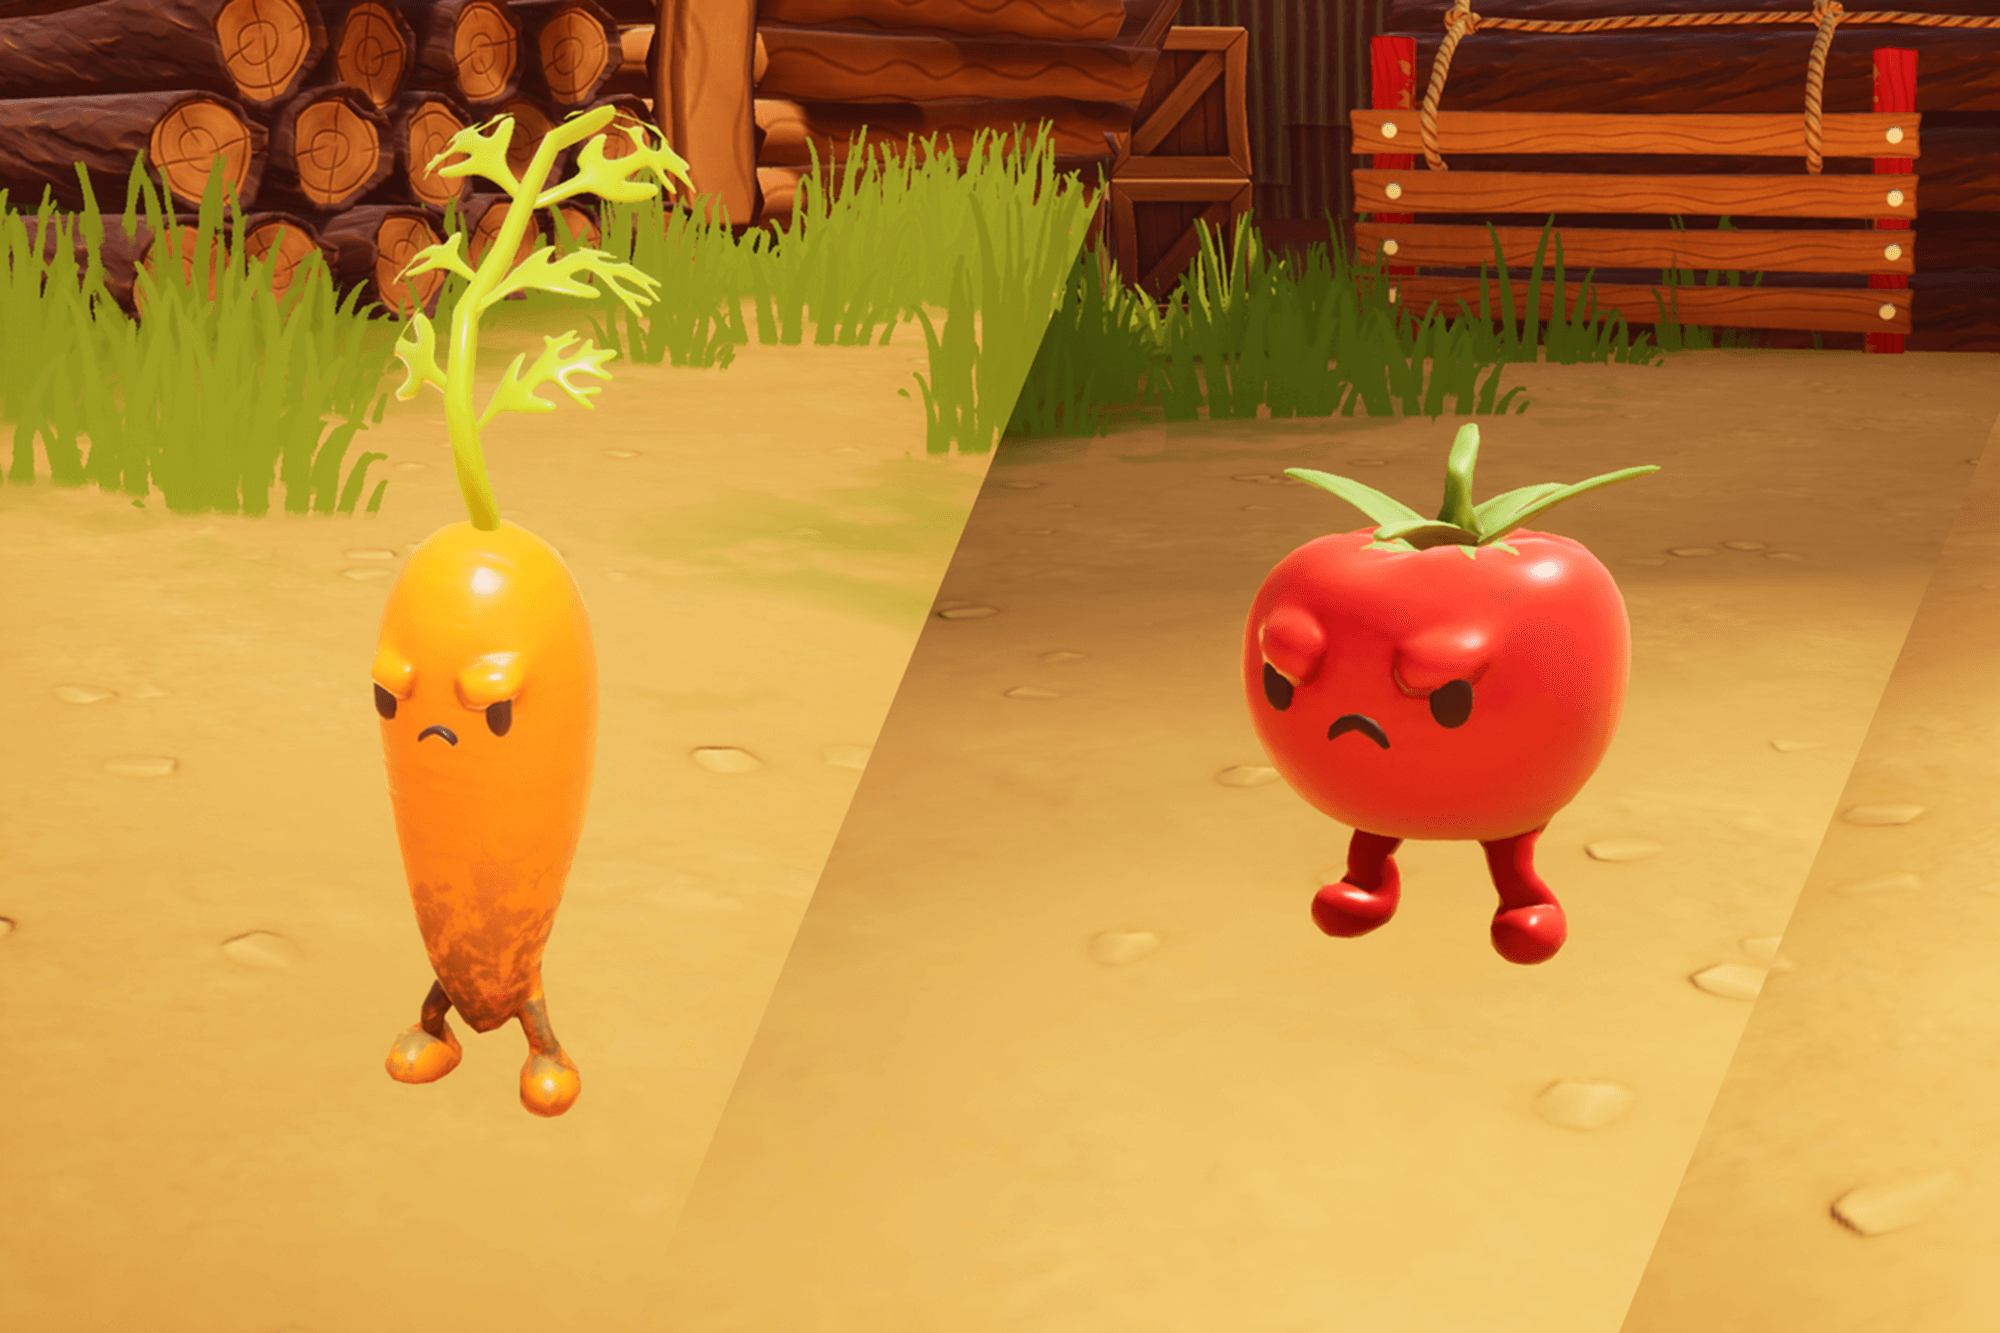 A carrot and a tomato in a computer game